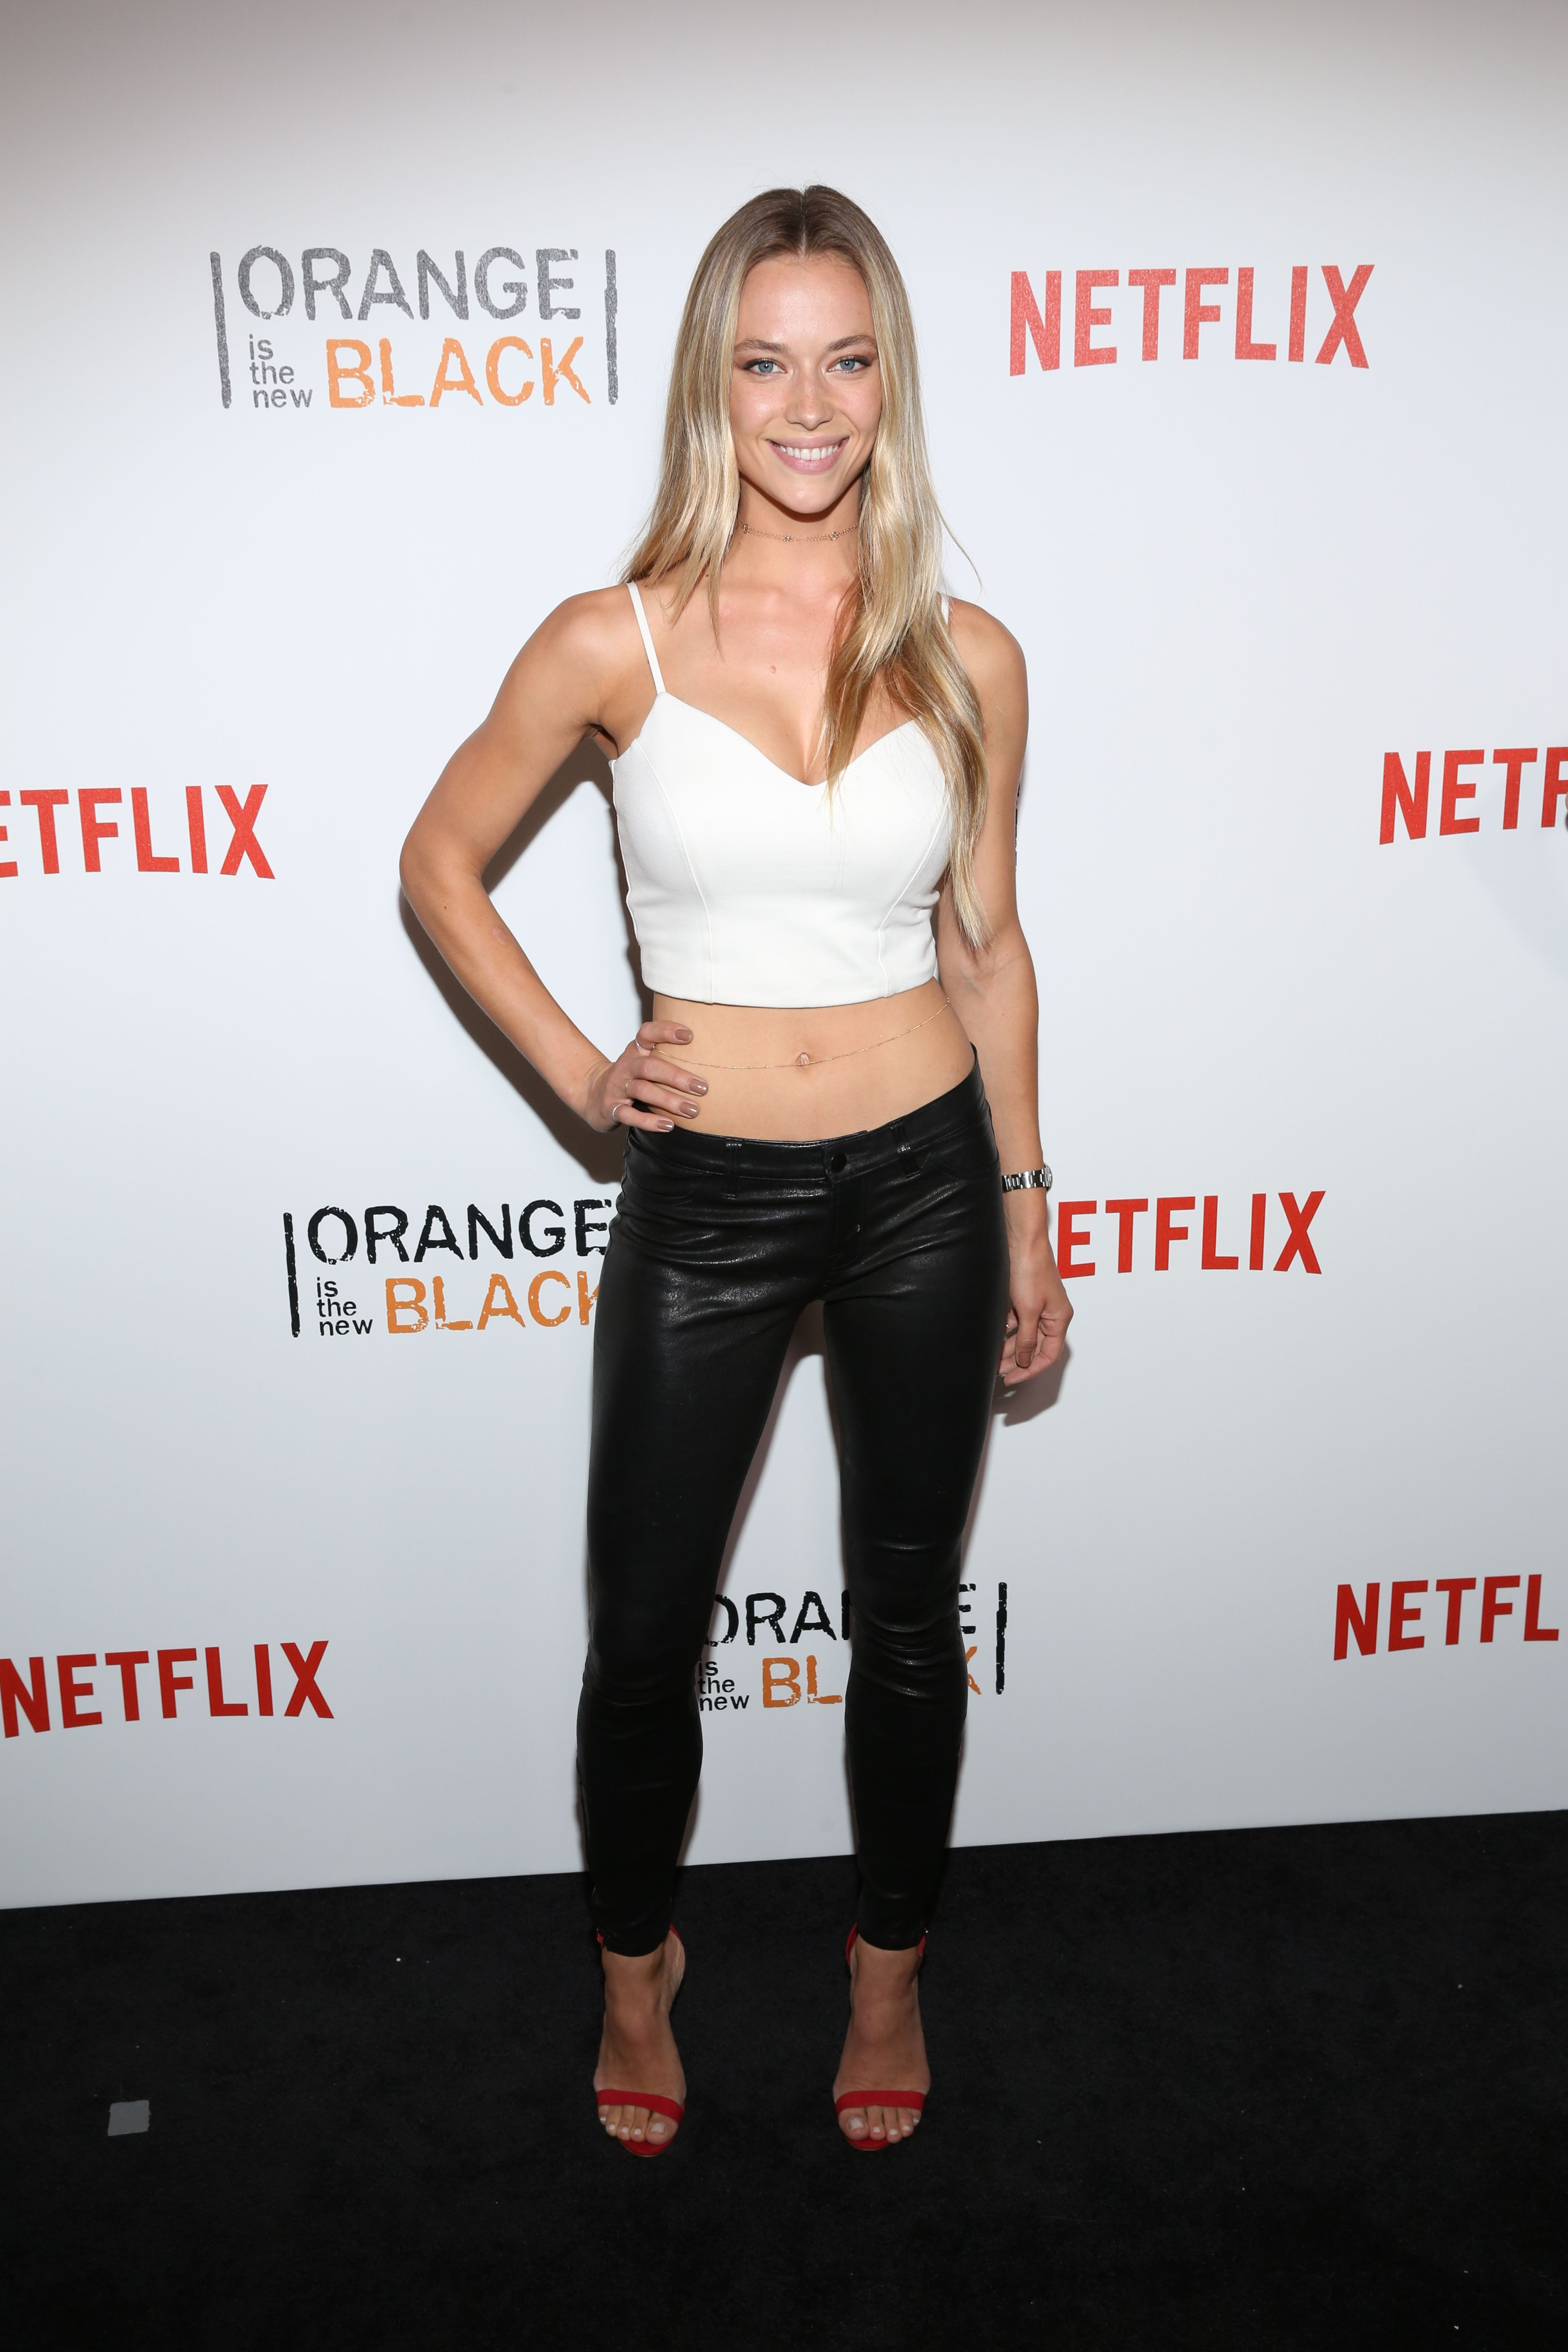 f326146aaf97 American fashion model Hannah Ferguson showed off her impressive figure in  skintight leather pants and a sleeveless crop top as she attended the   Orange…